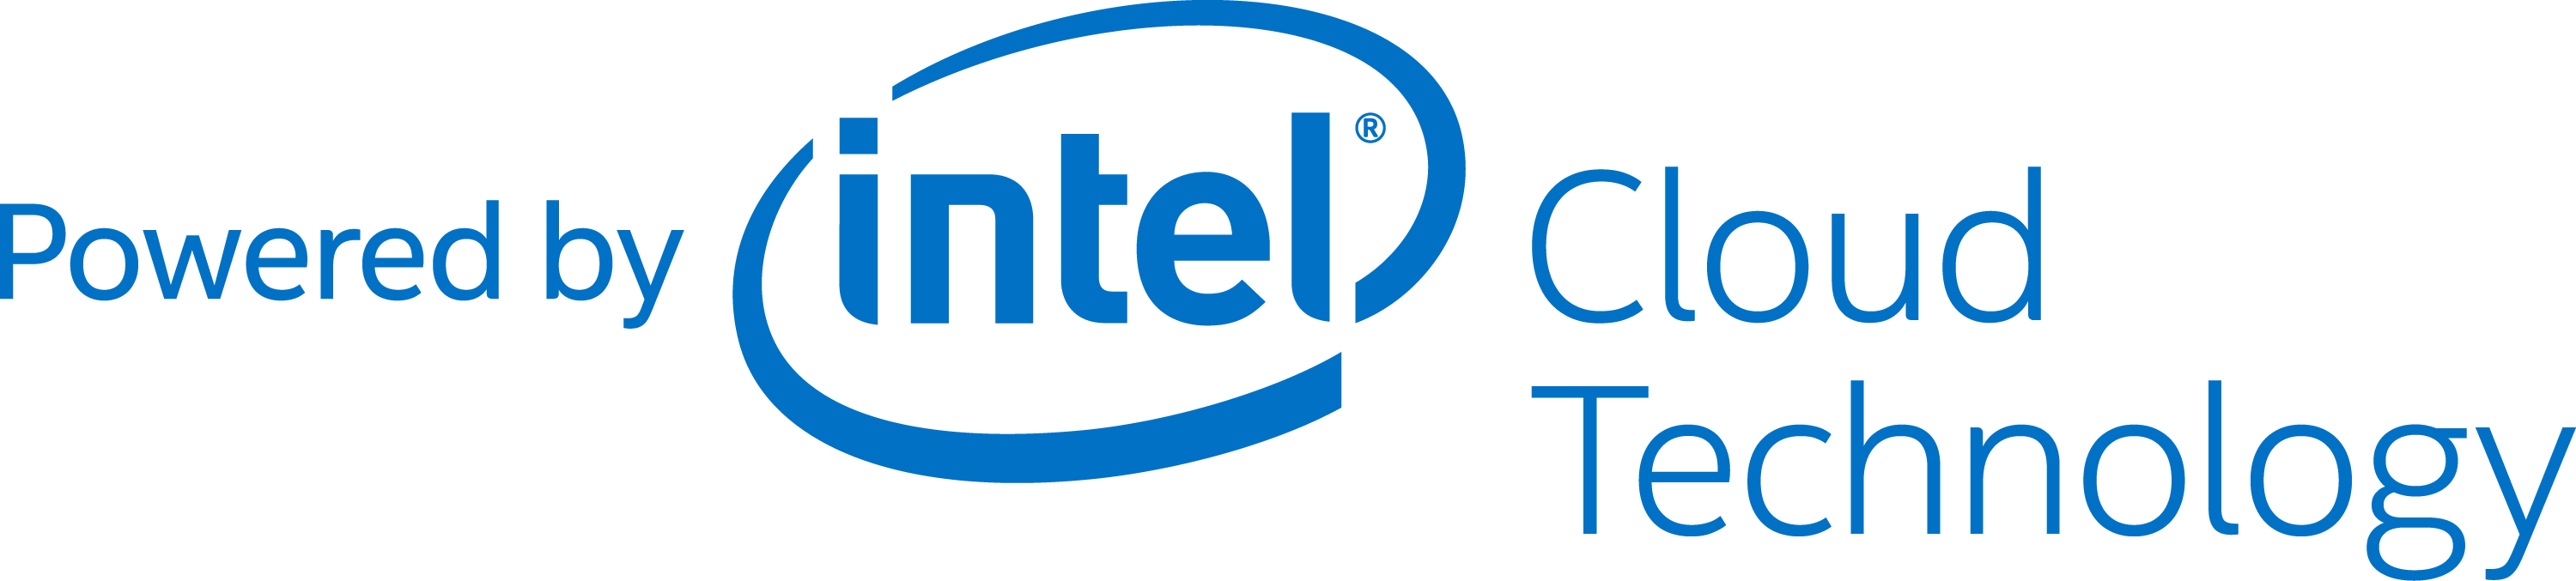 Powered by Intel Cloud Technology